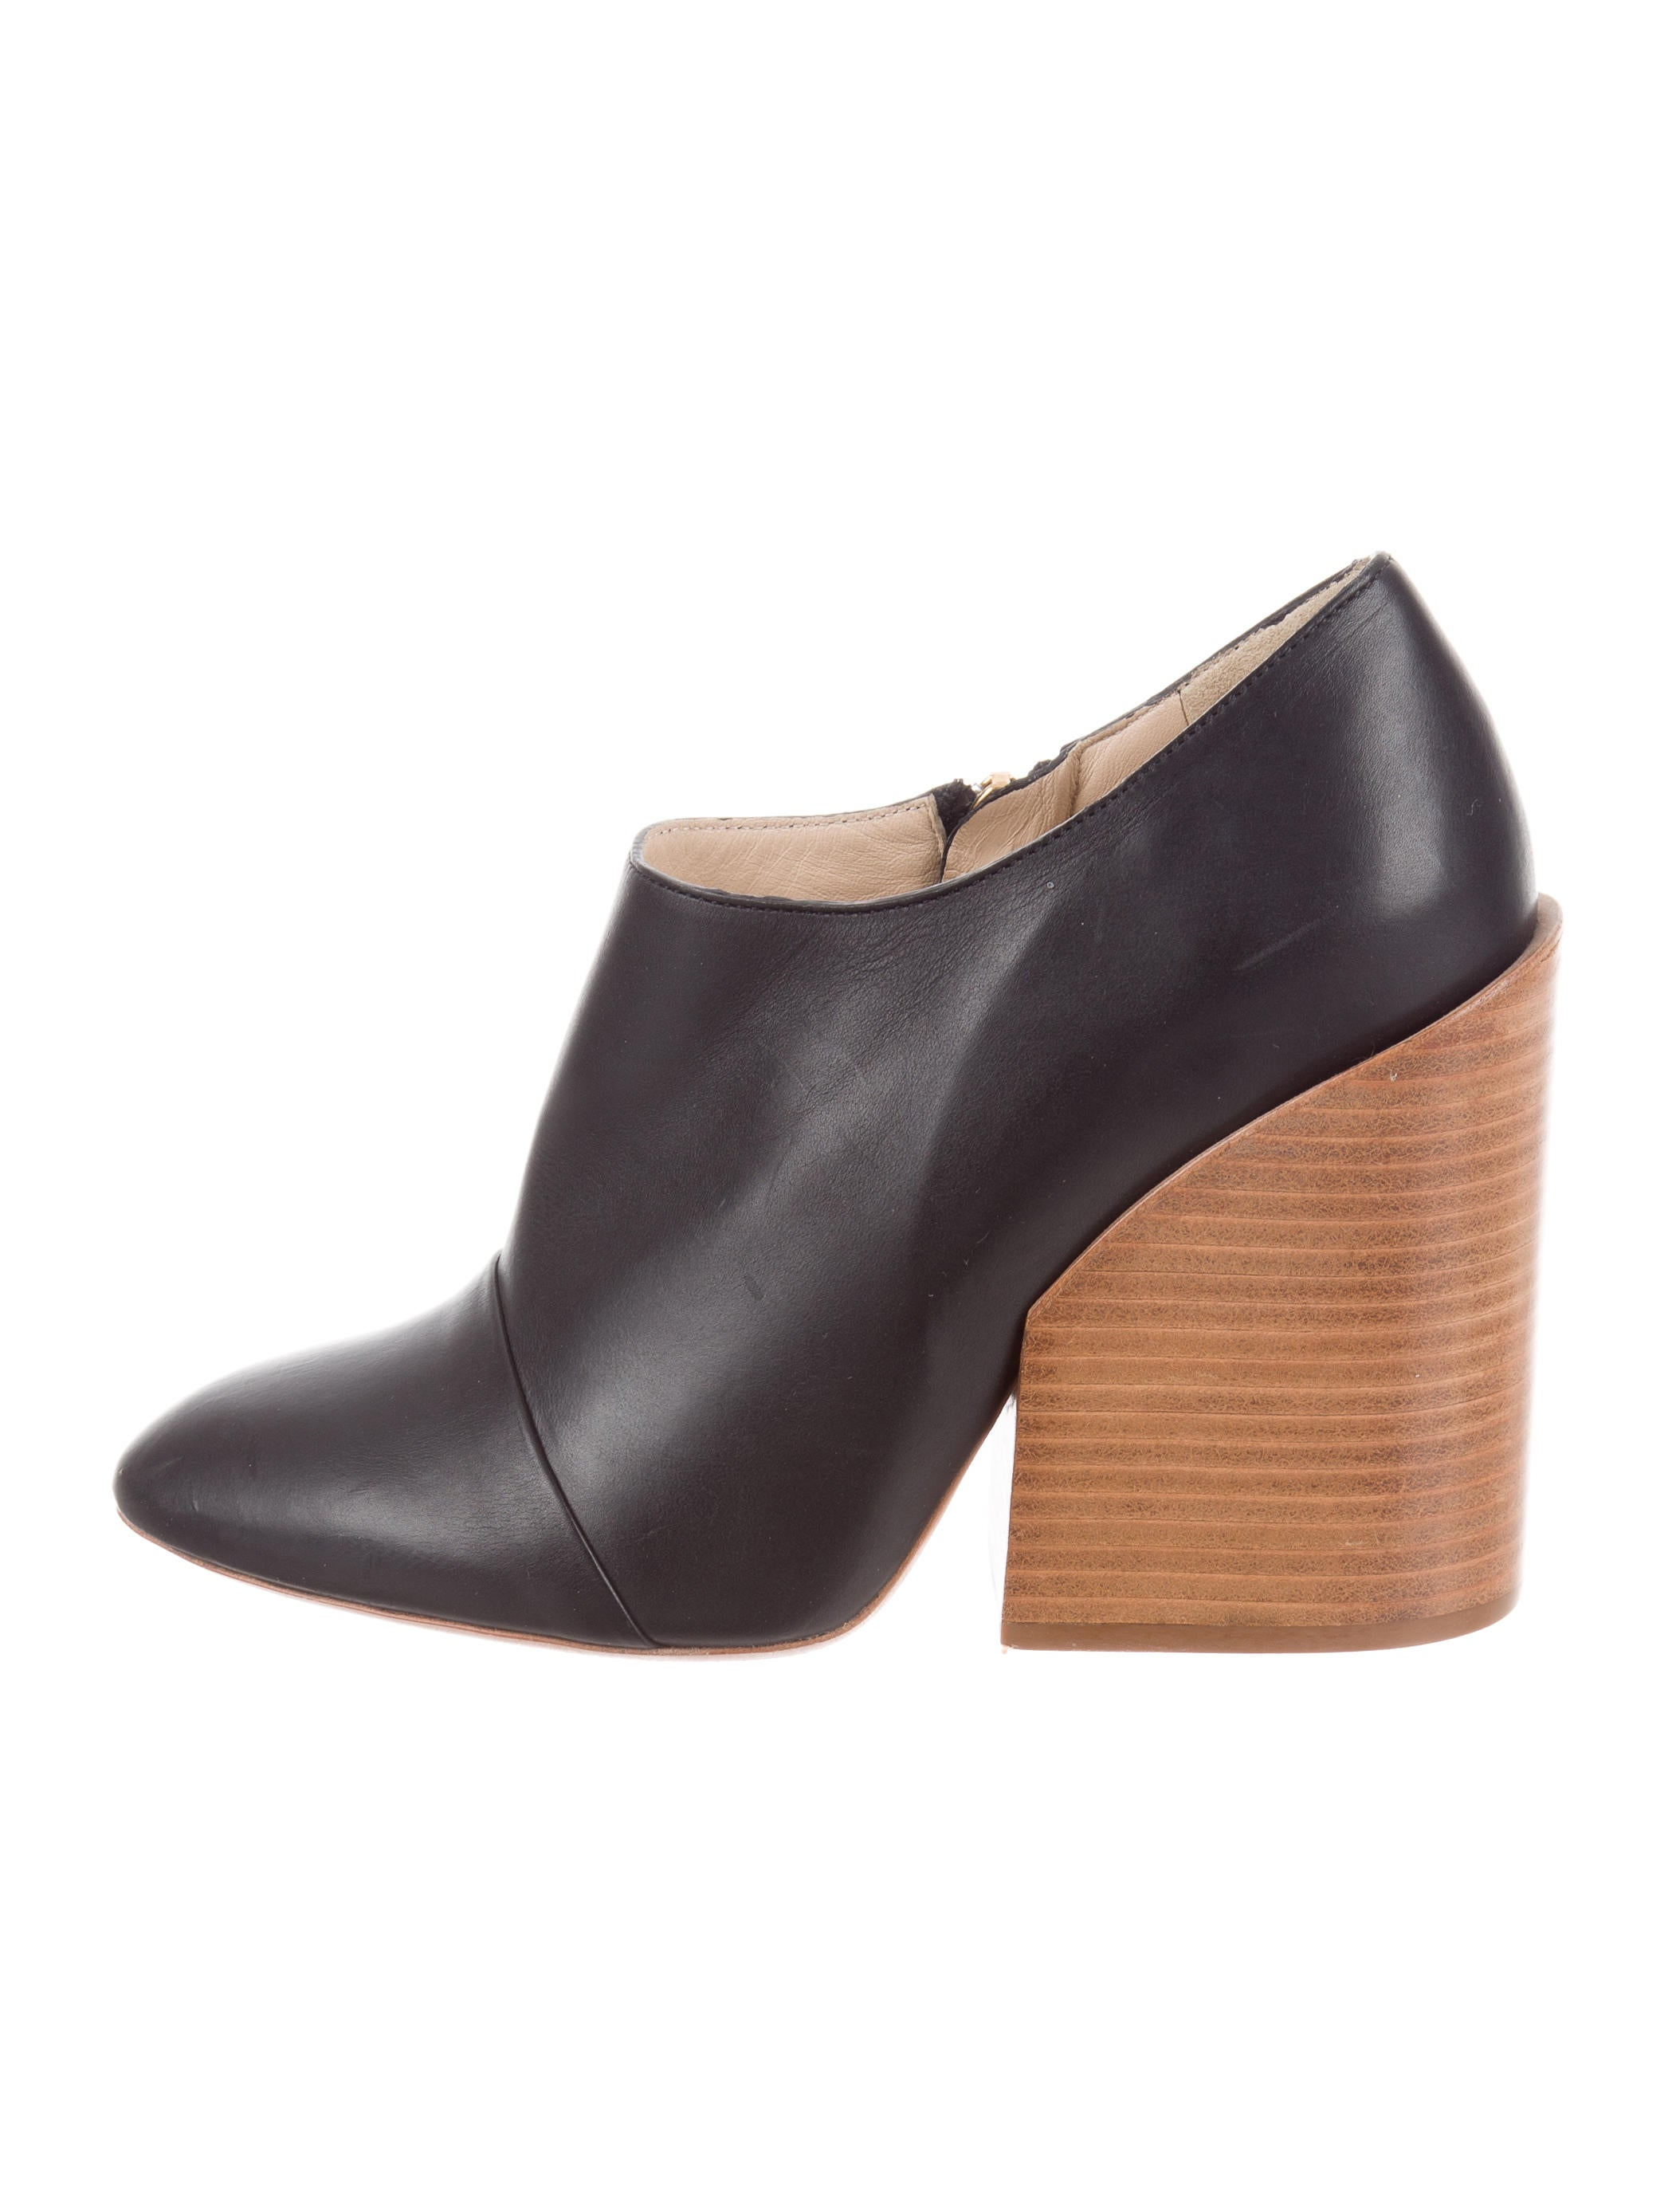 Chloé Stabio Leather Booties cheap really discount top quality footlocker sale online sale 2015 oXo1Je0